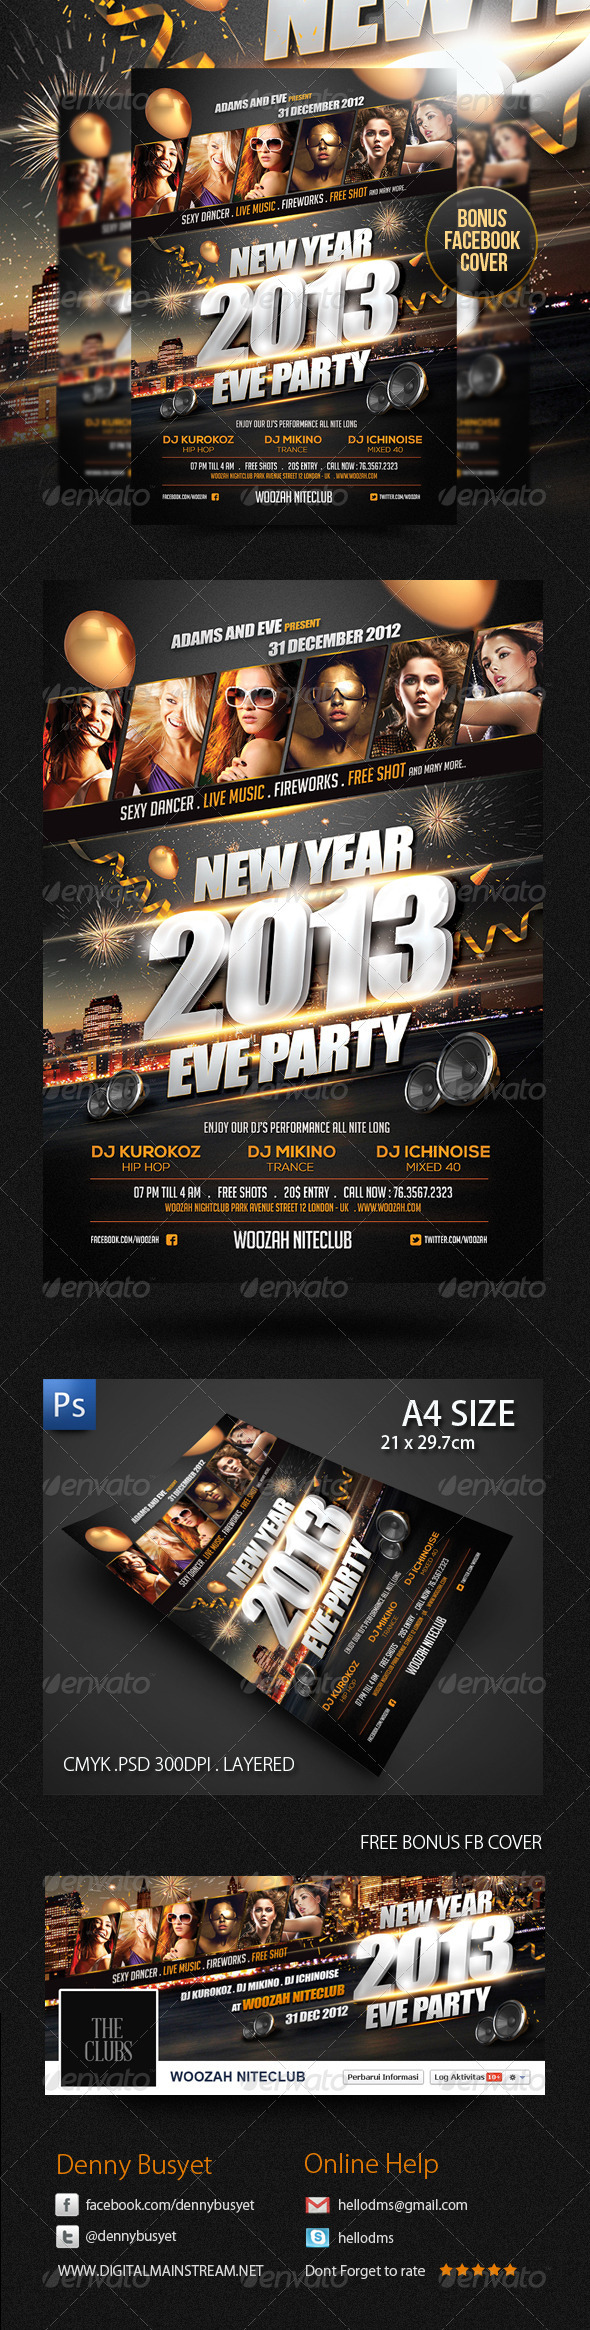 New Years Eve Party Flyer Poster Template - Clubs & Parties Events